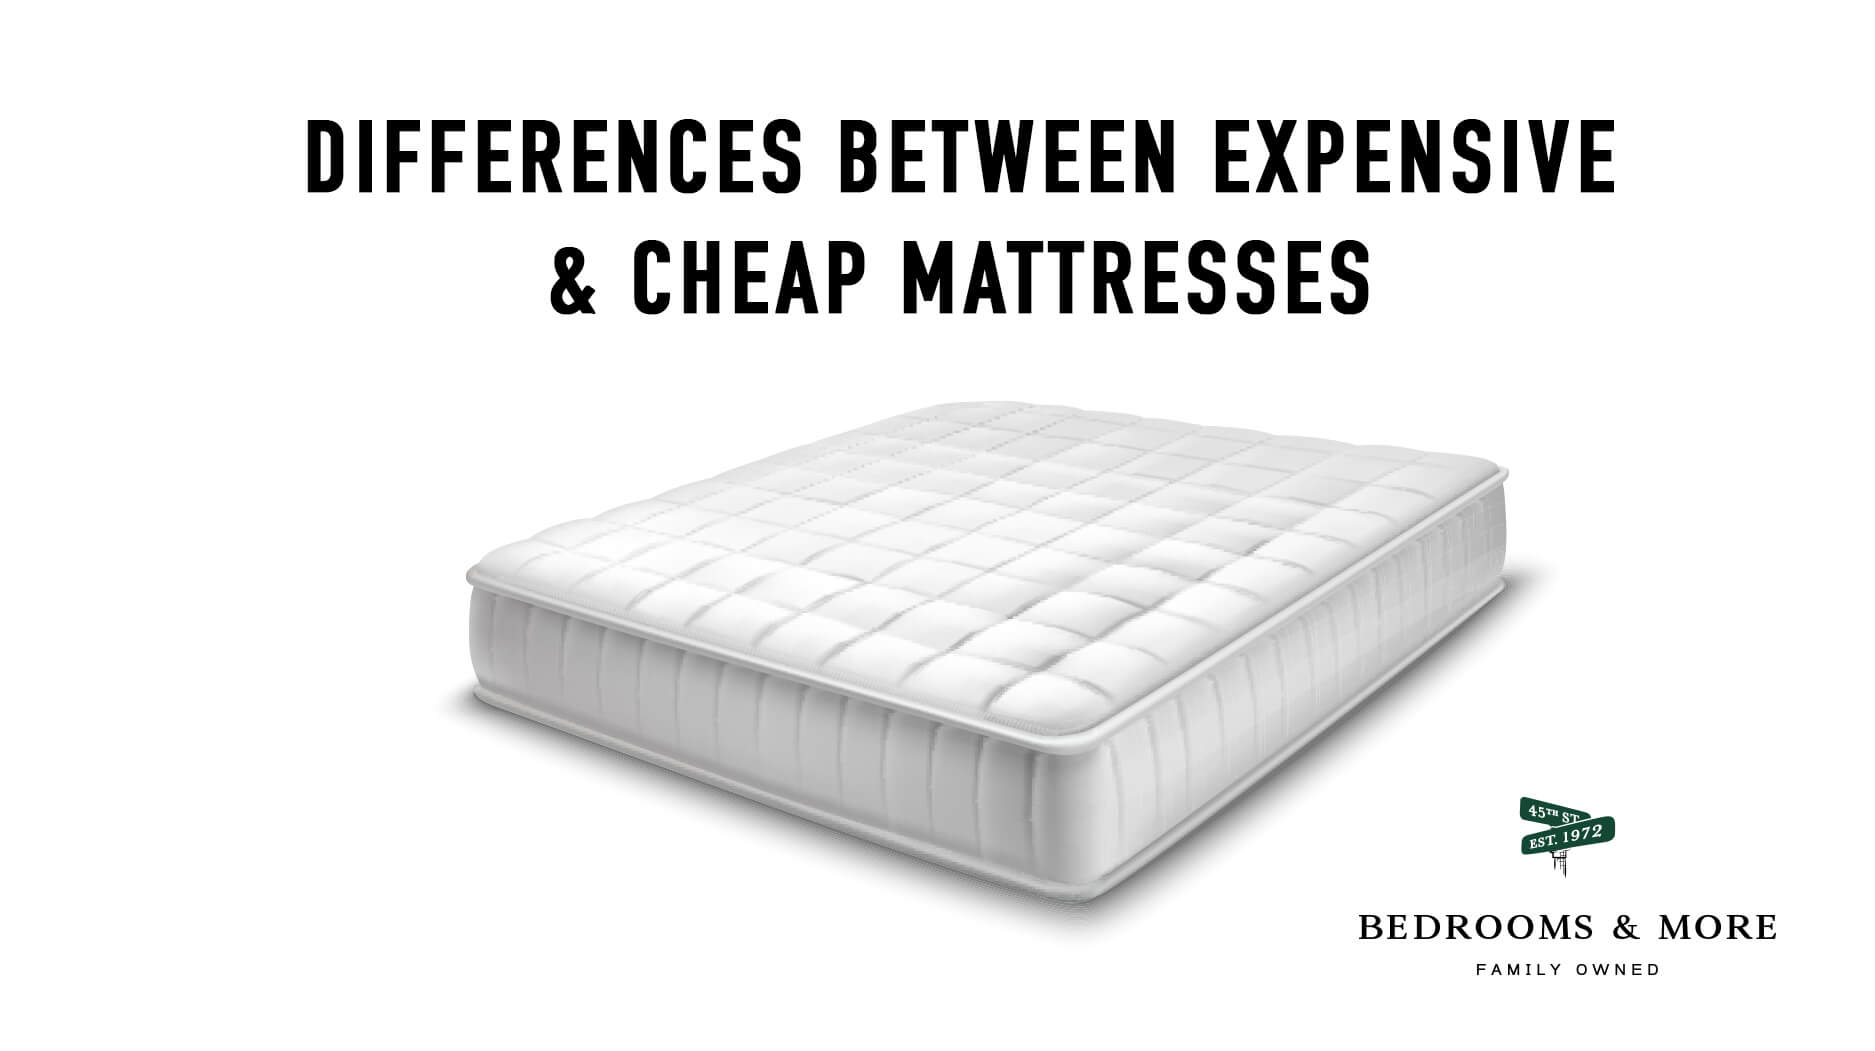 Difference Between Expensive Mattresses & Cheap Mattresses